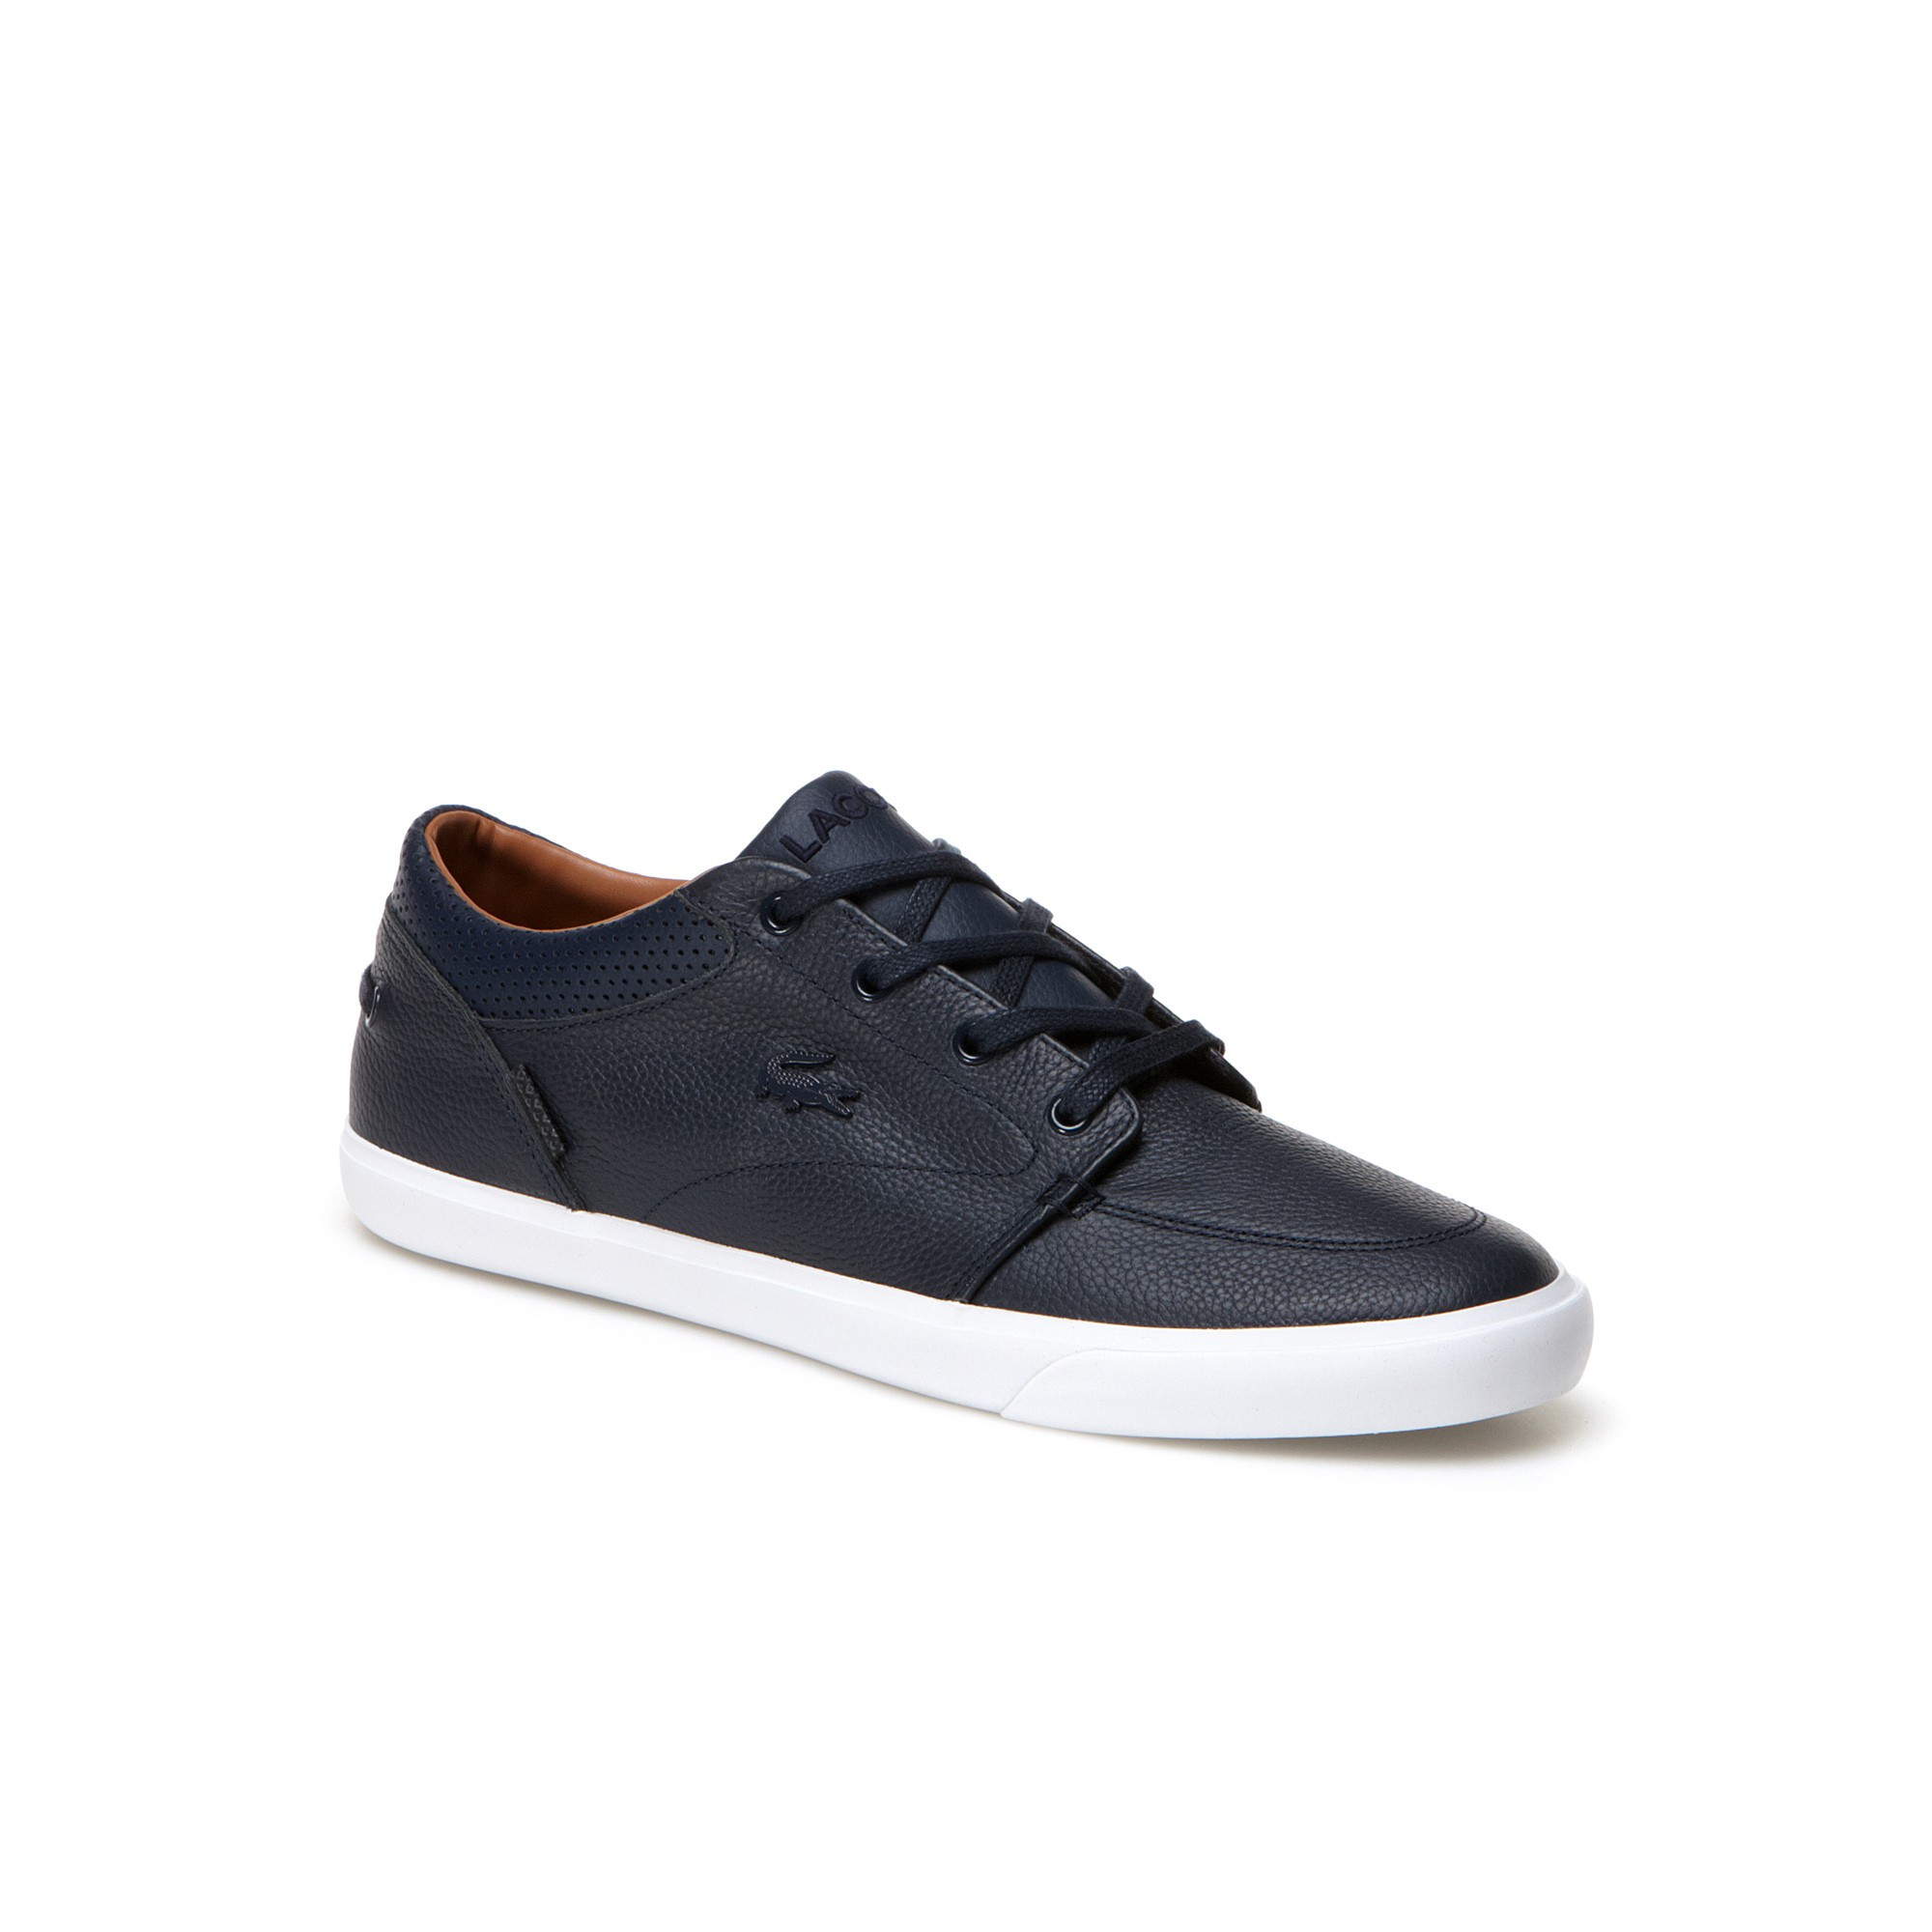 timeless design b5a6e 39f61 Discover ideas about Lacoste Shoes. Mens Leather Sneakers by Lacoste